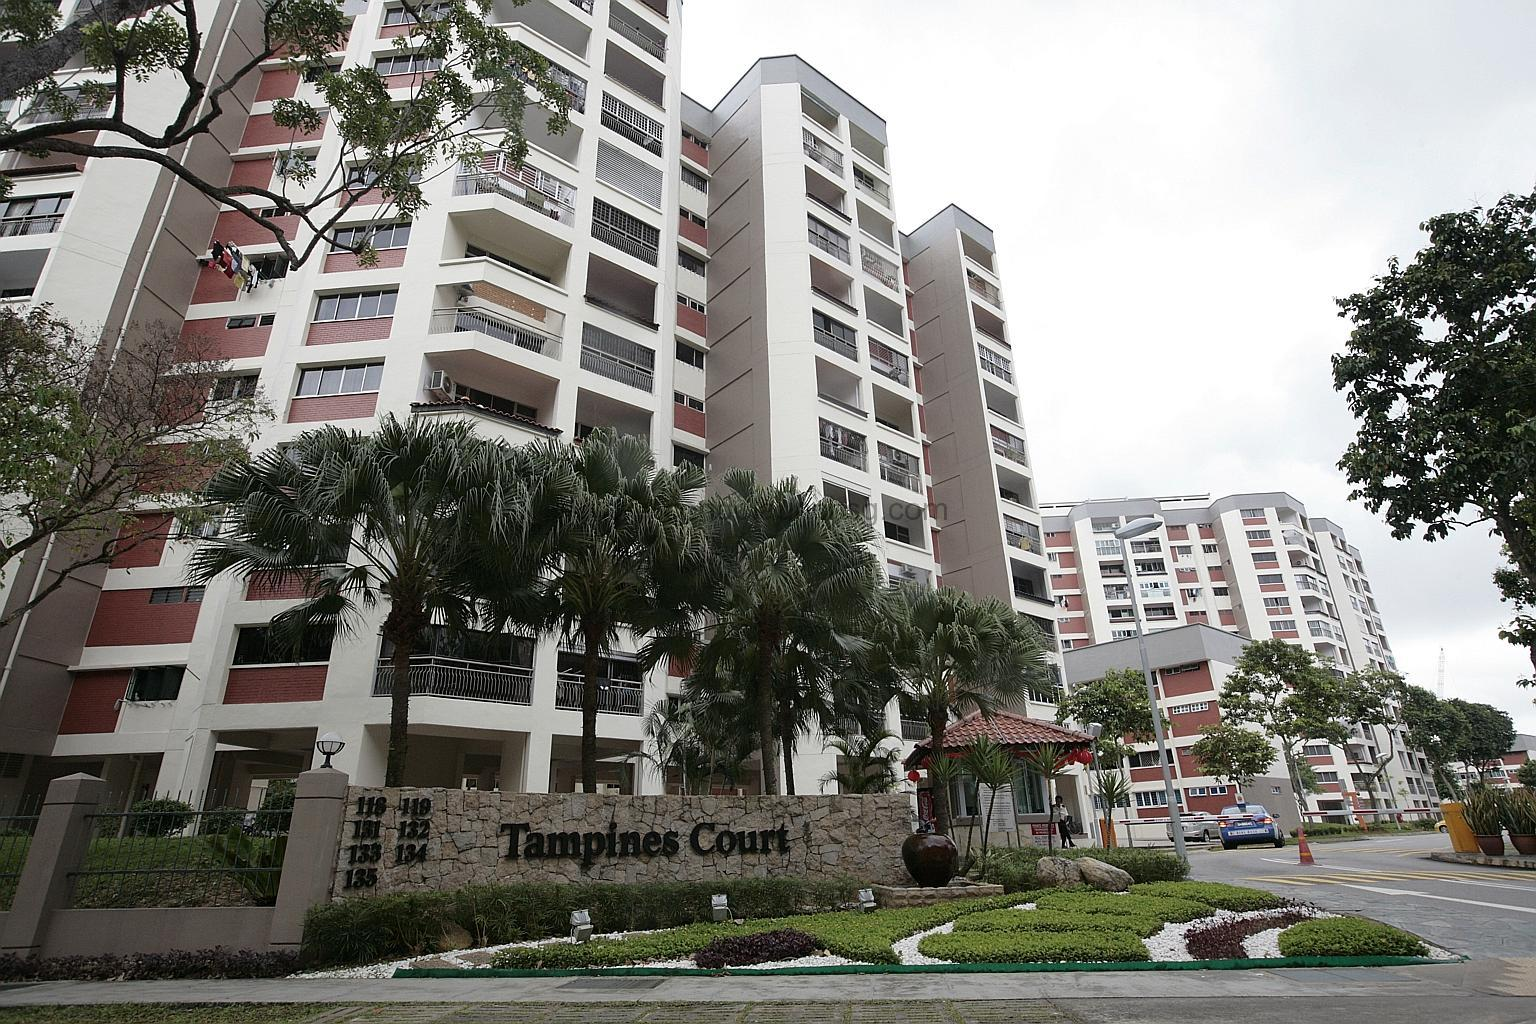 Treasure at Tampines, Singapore (Former Tampines Court)